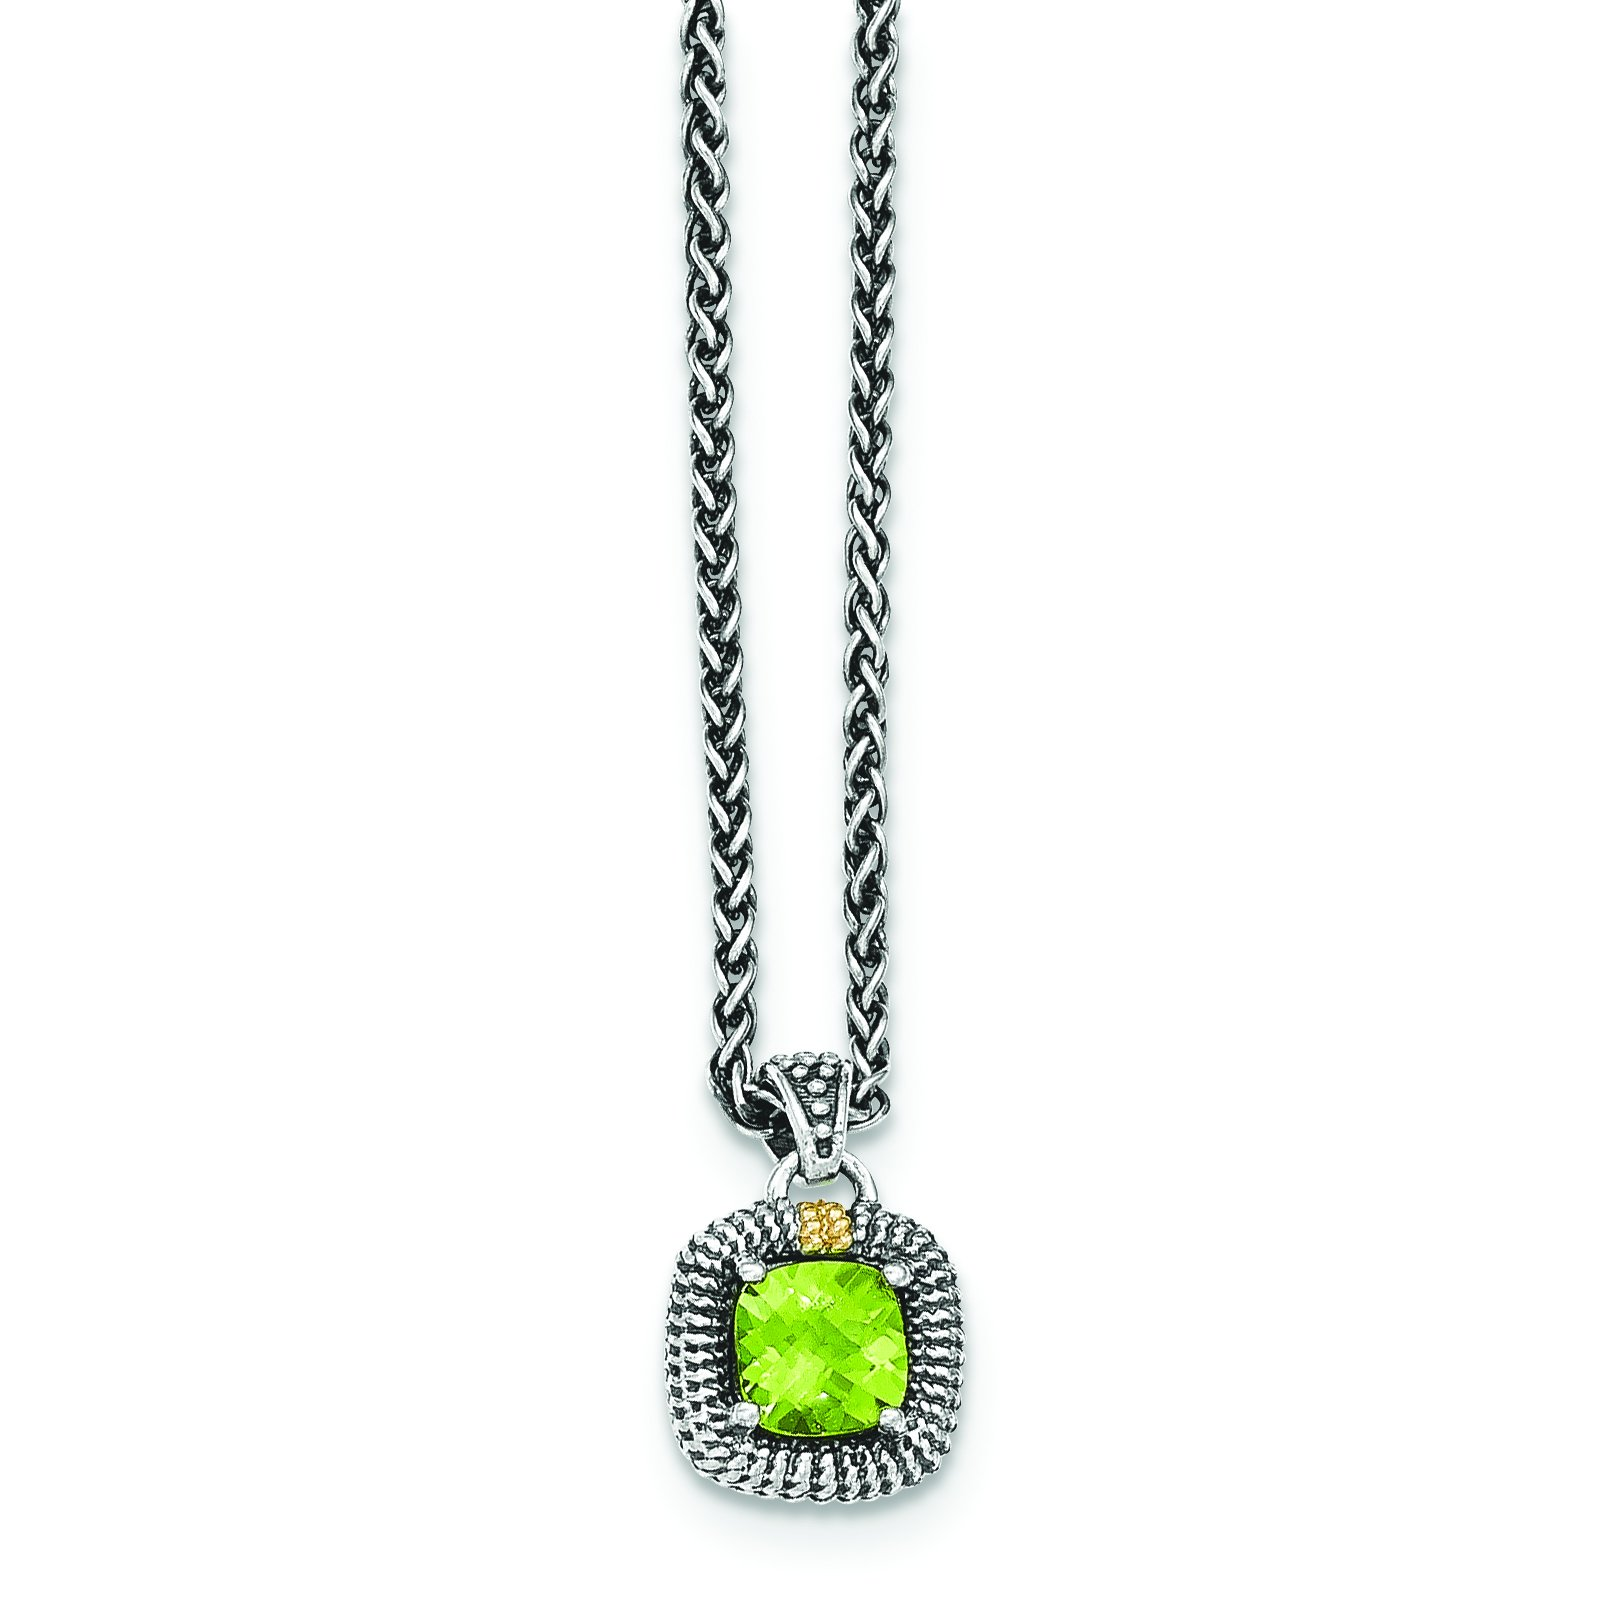 ICE CARATS 925 Sterling Silver 14ky Green Peridot Chain Necklace Gemstone Fine Jewelry Gift Set For Women Heart